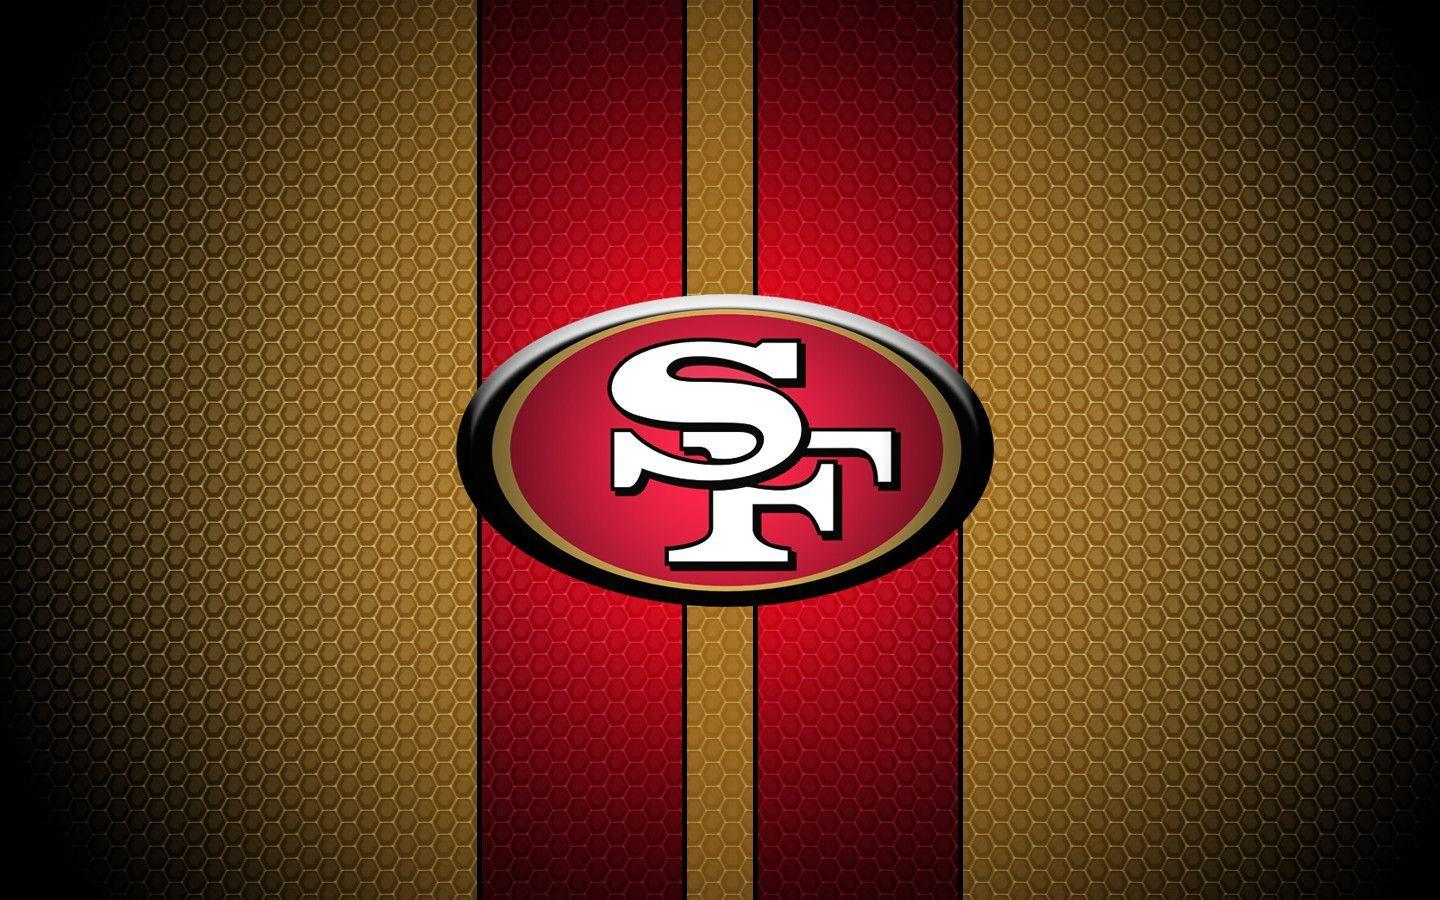 San Francisco 49ers Wallpapers 2016, High Quality Photos of San